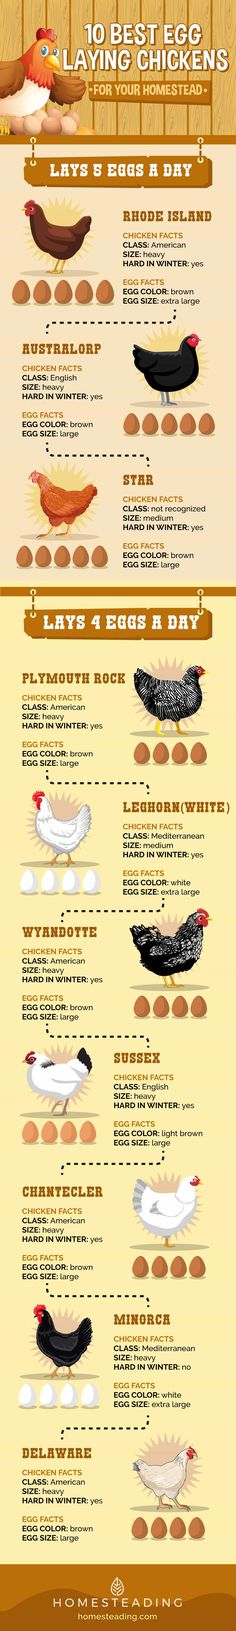 20170616-homesteading-10-best-egg-laying-chicken-1.jpg (1003×6933)